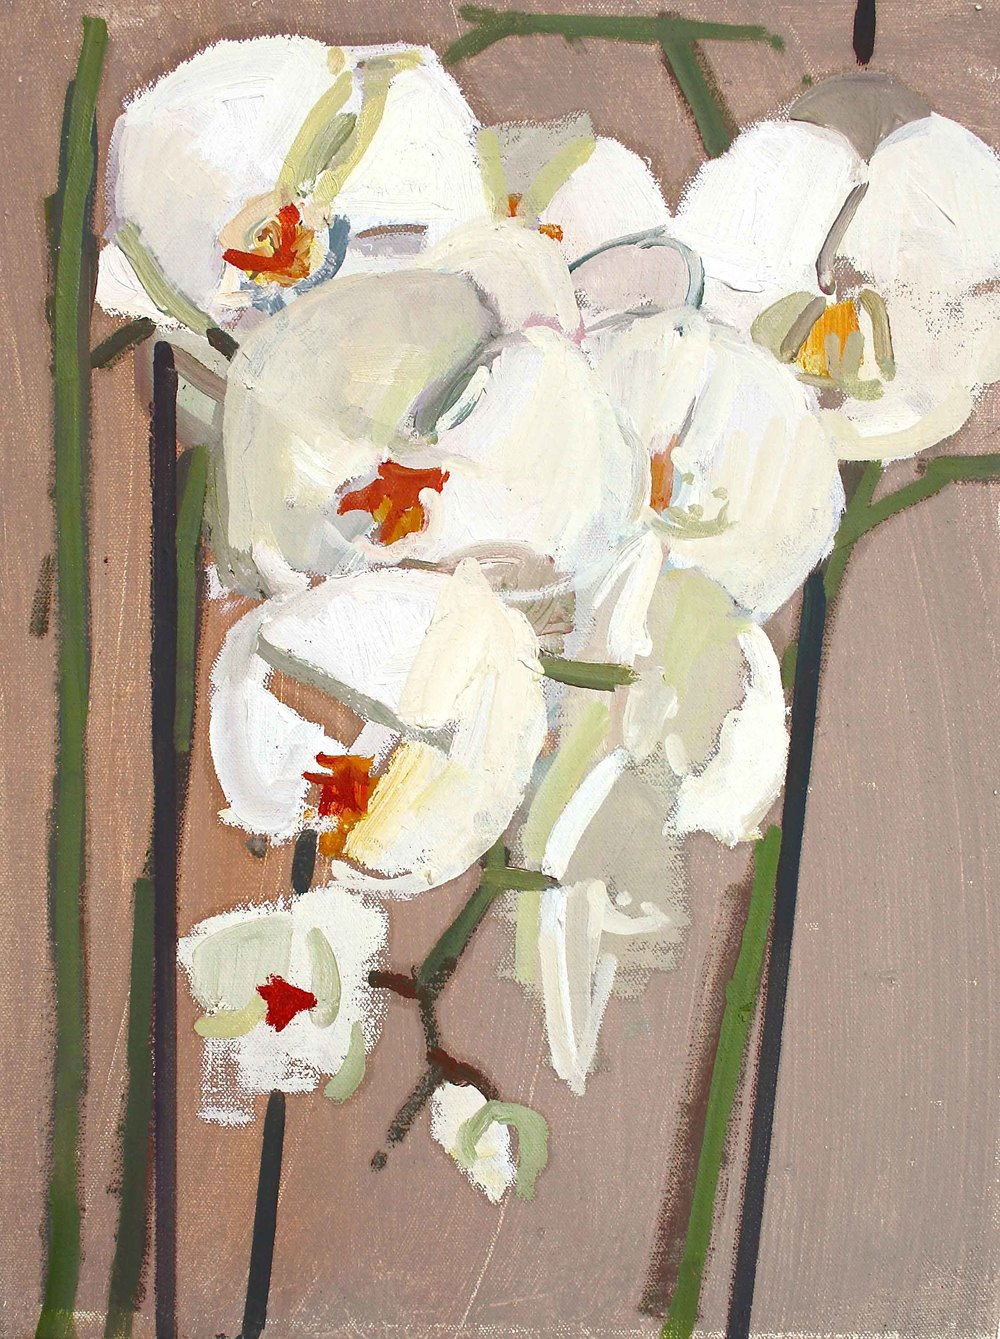 40 x 30 cm White Orchid, Oil on Canvas